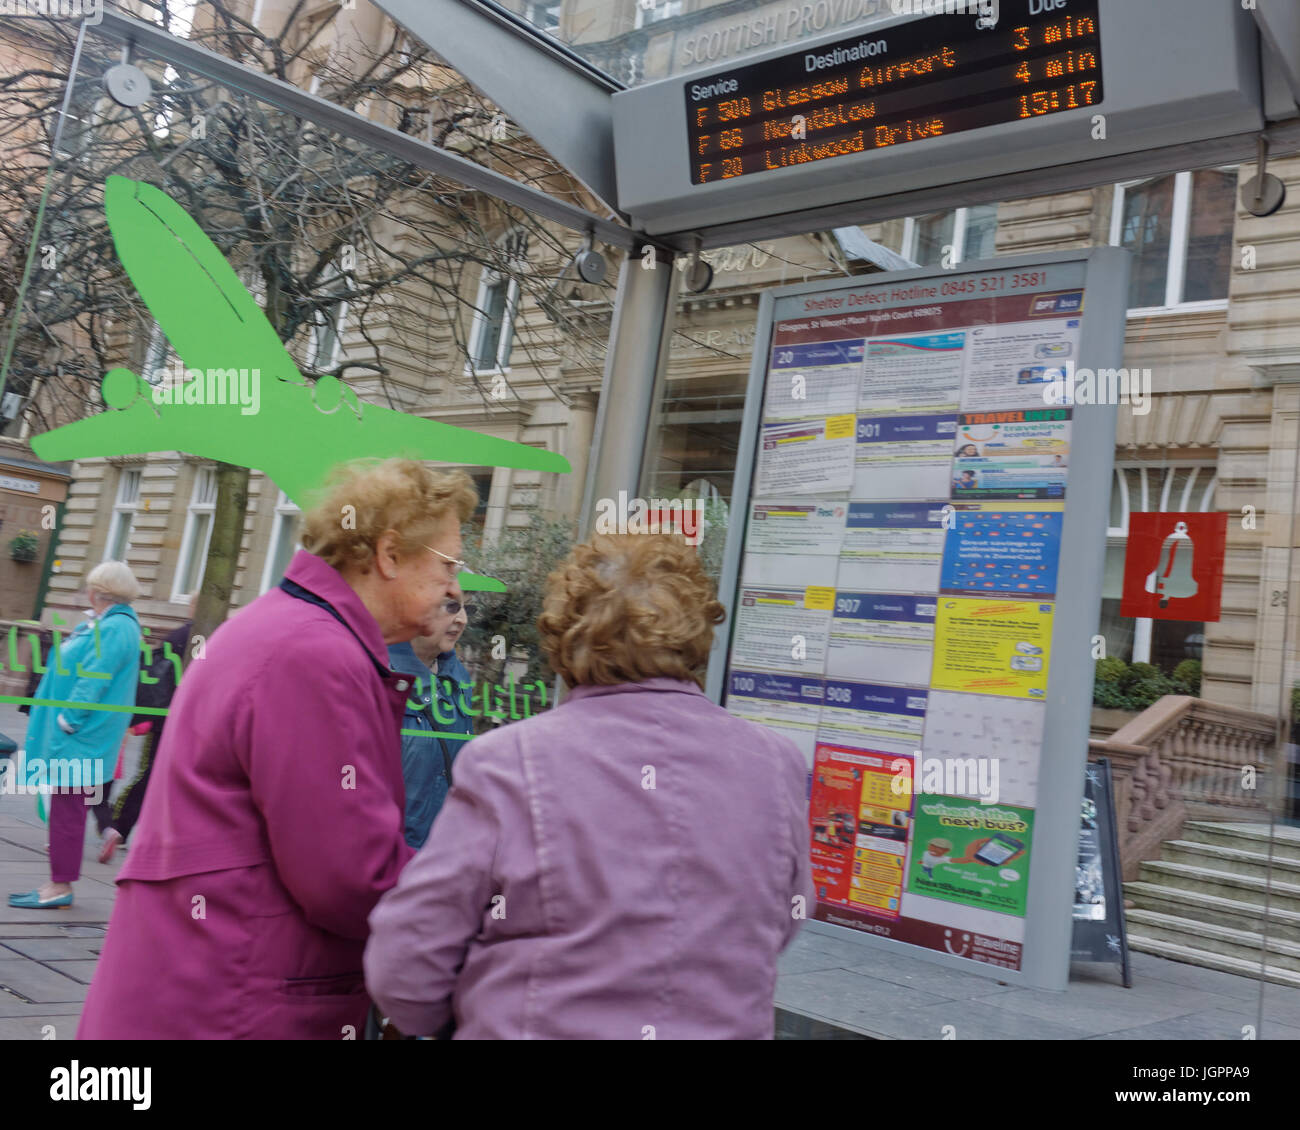 old ladies consulting bus timetable at a bus stop with jet plane